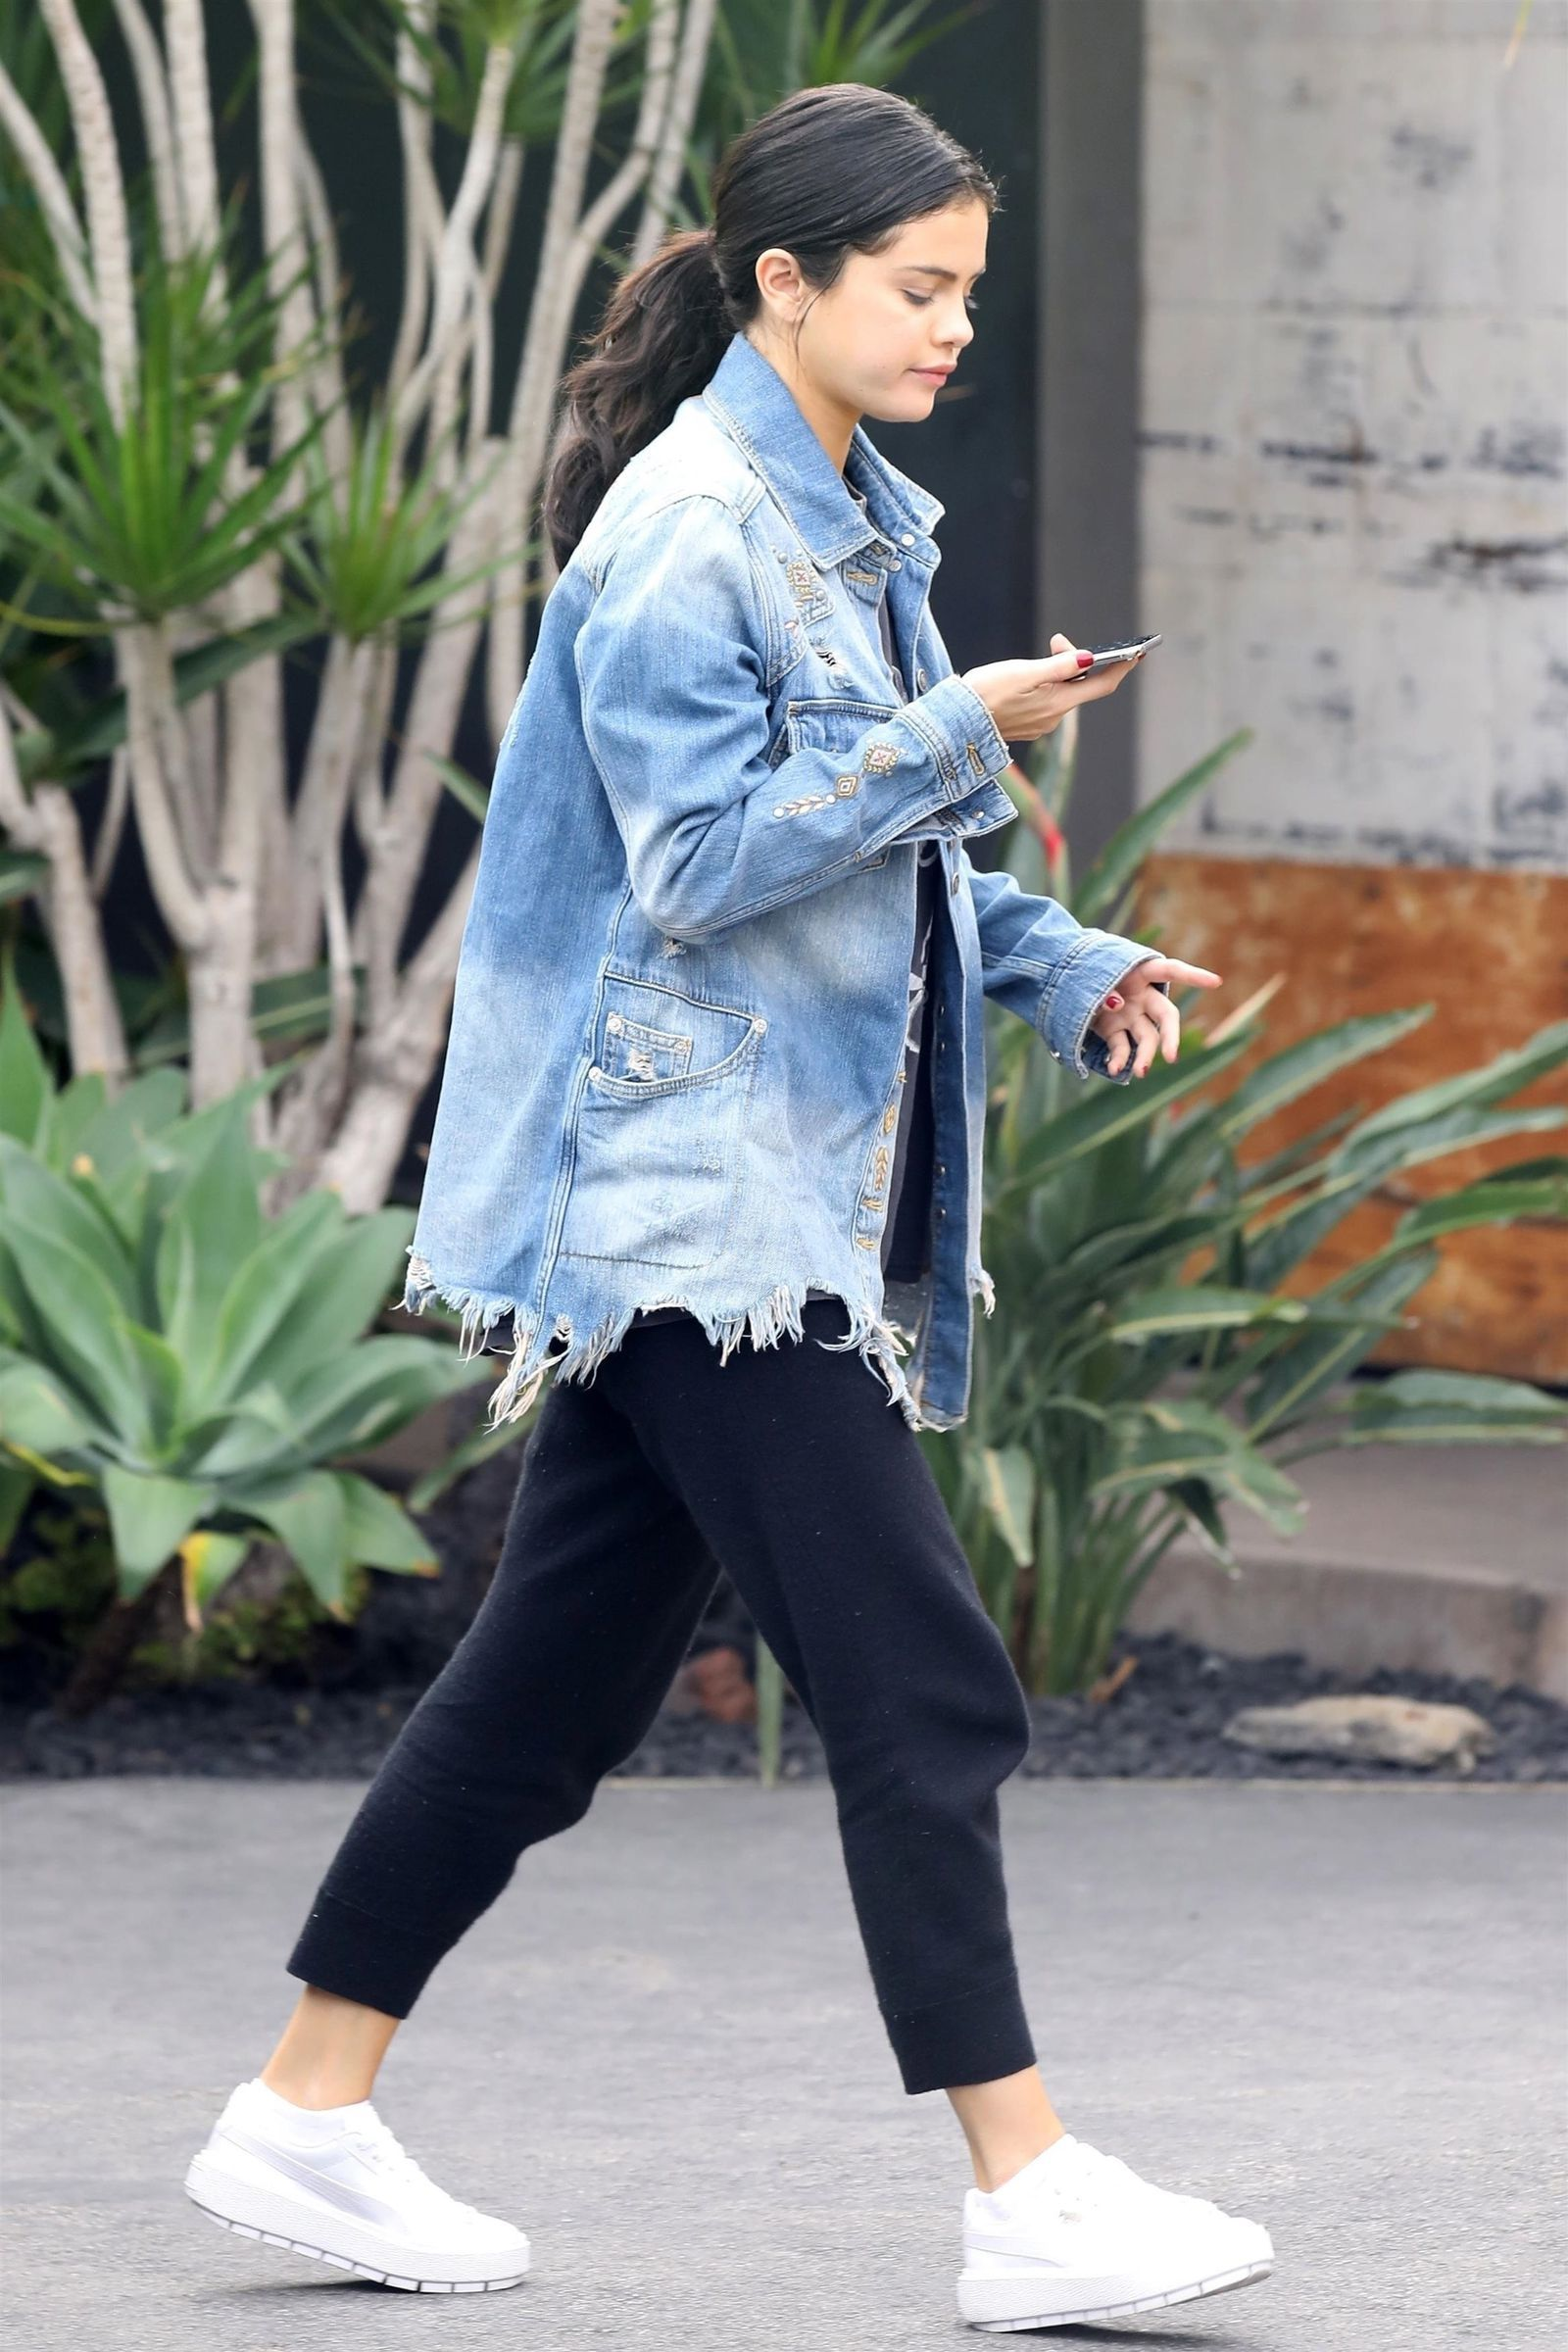 Selena Gomez Wore An Oversized Denim Jacket And Black Jogger Pants While Out In L A Denim Jacket Outfit Oversized Denim Jacket Oversized Denim Jacket Outfit